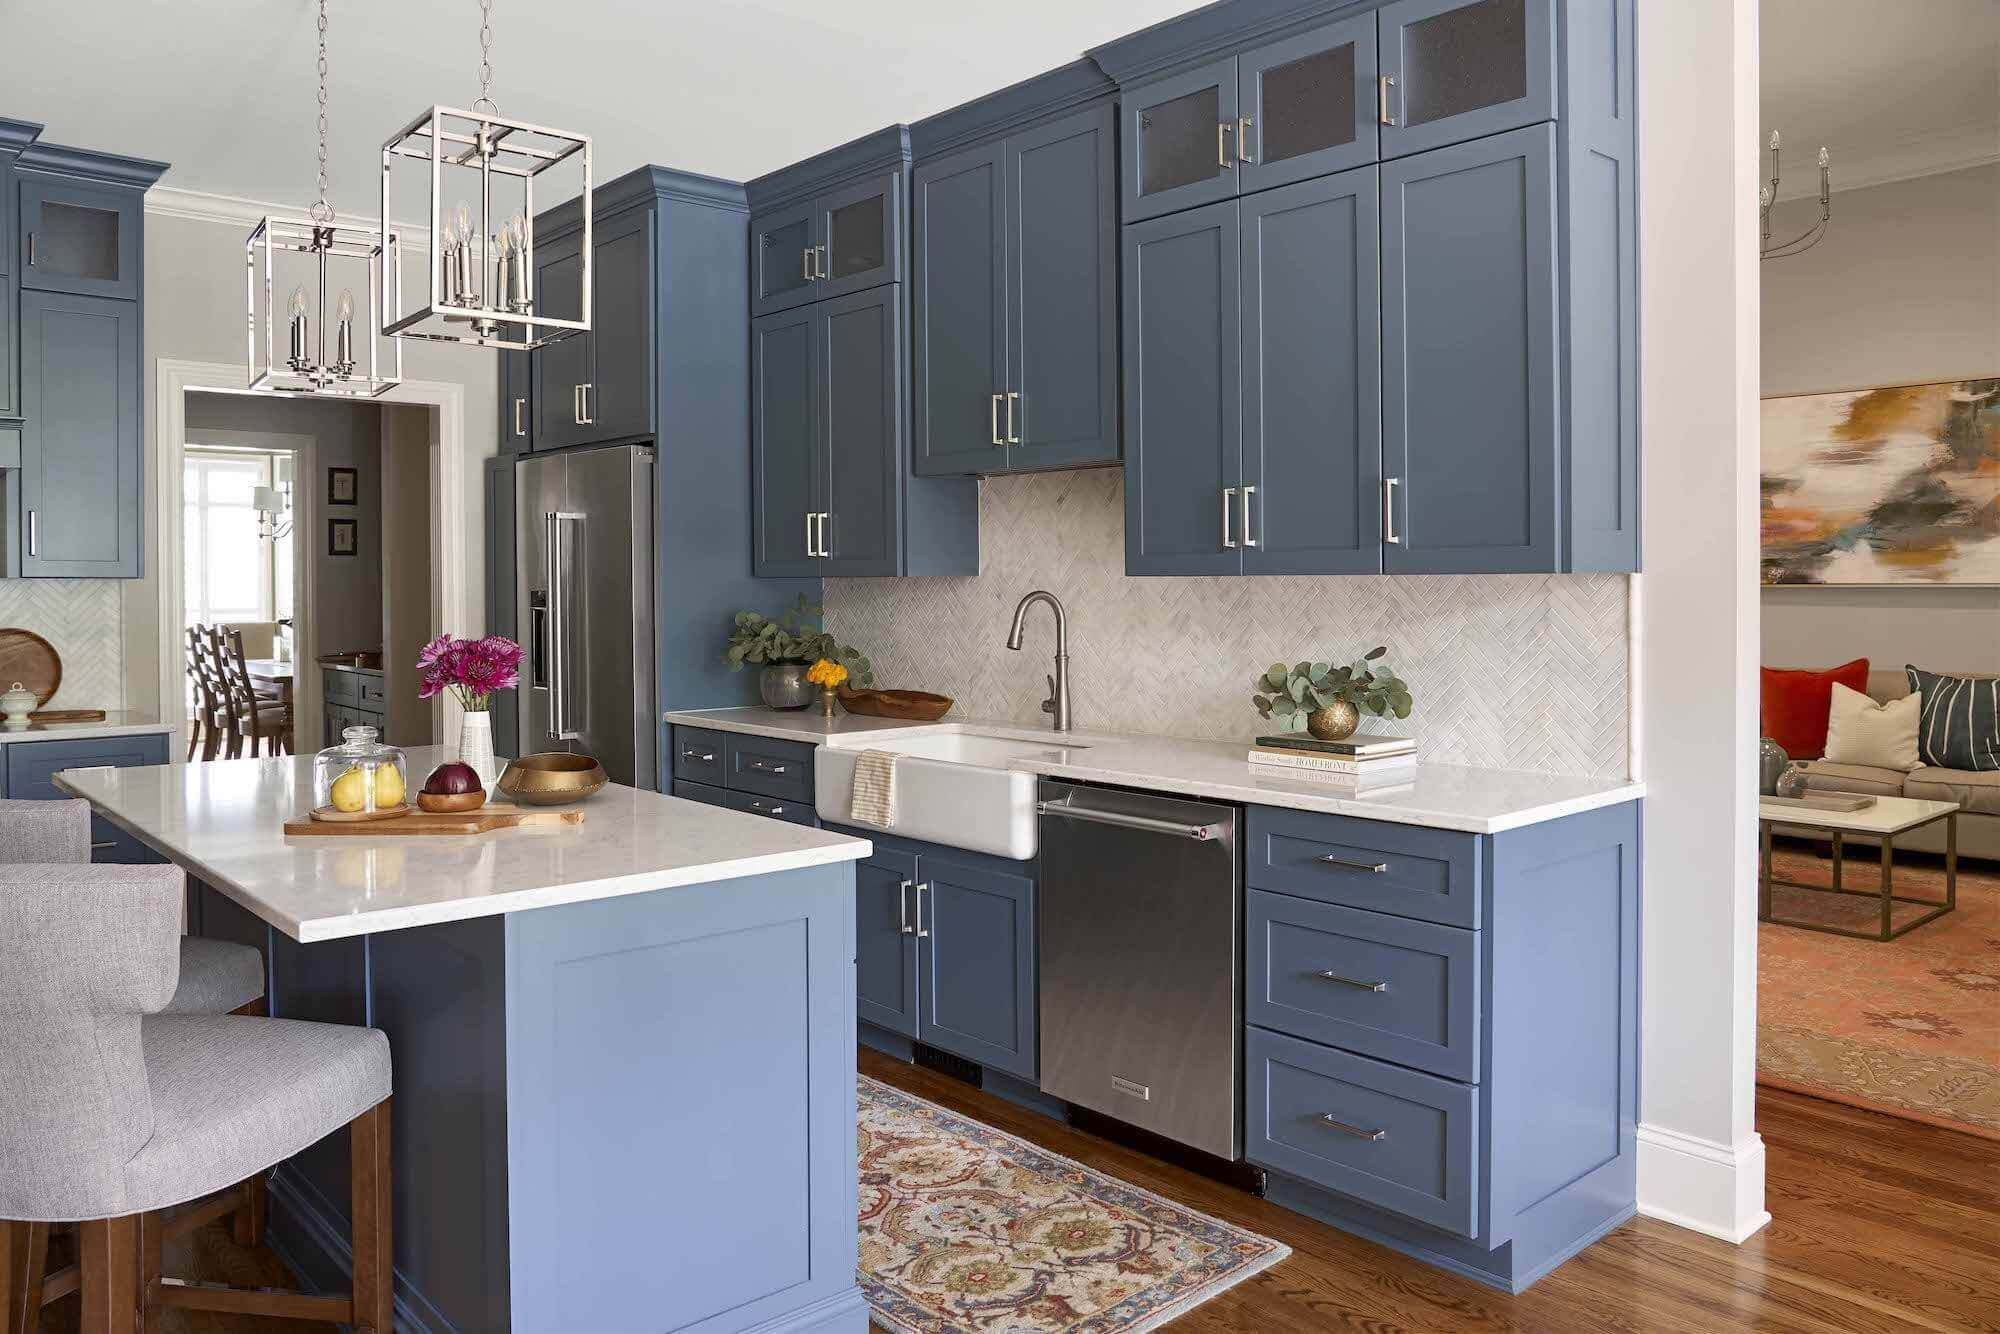 Nashville Kitchen Renovation